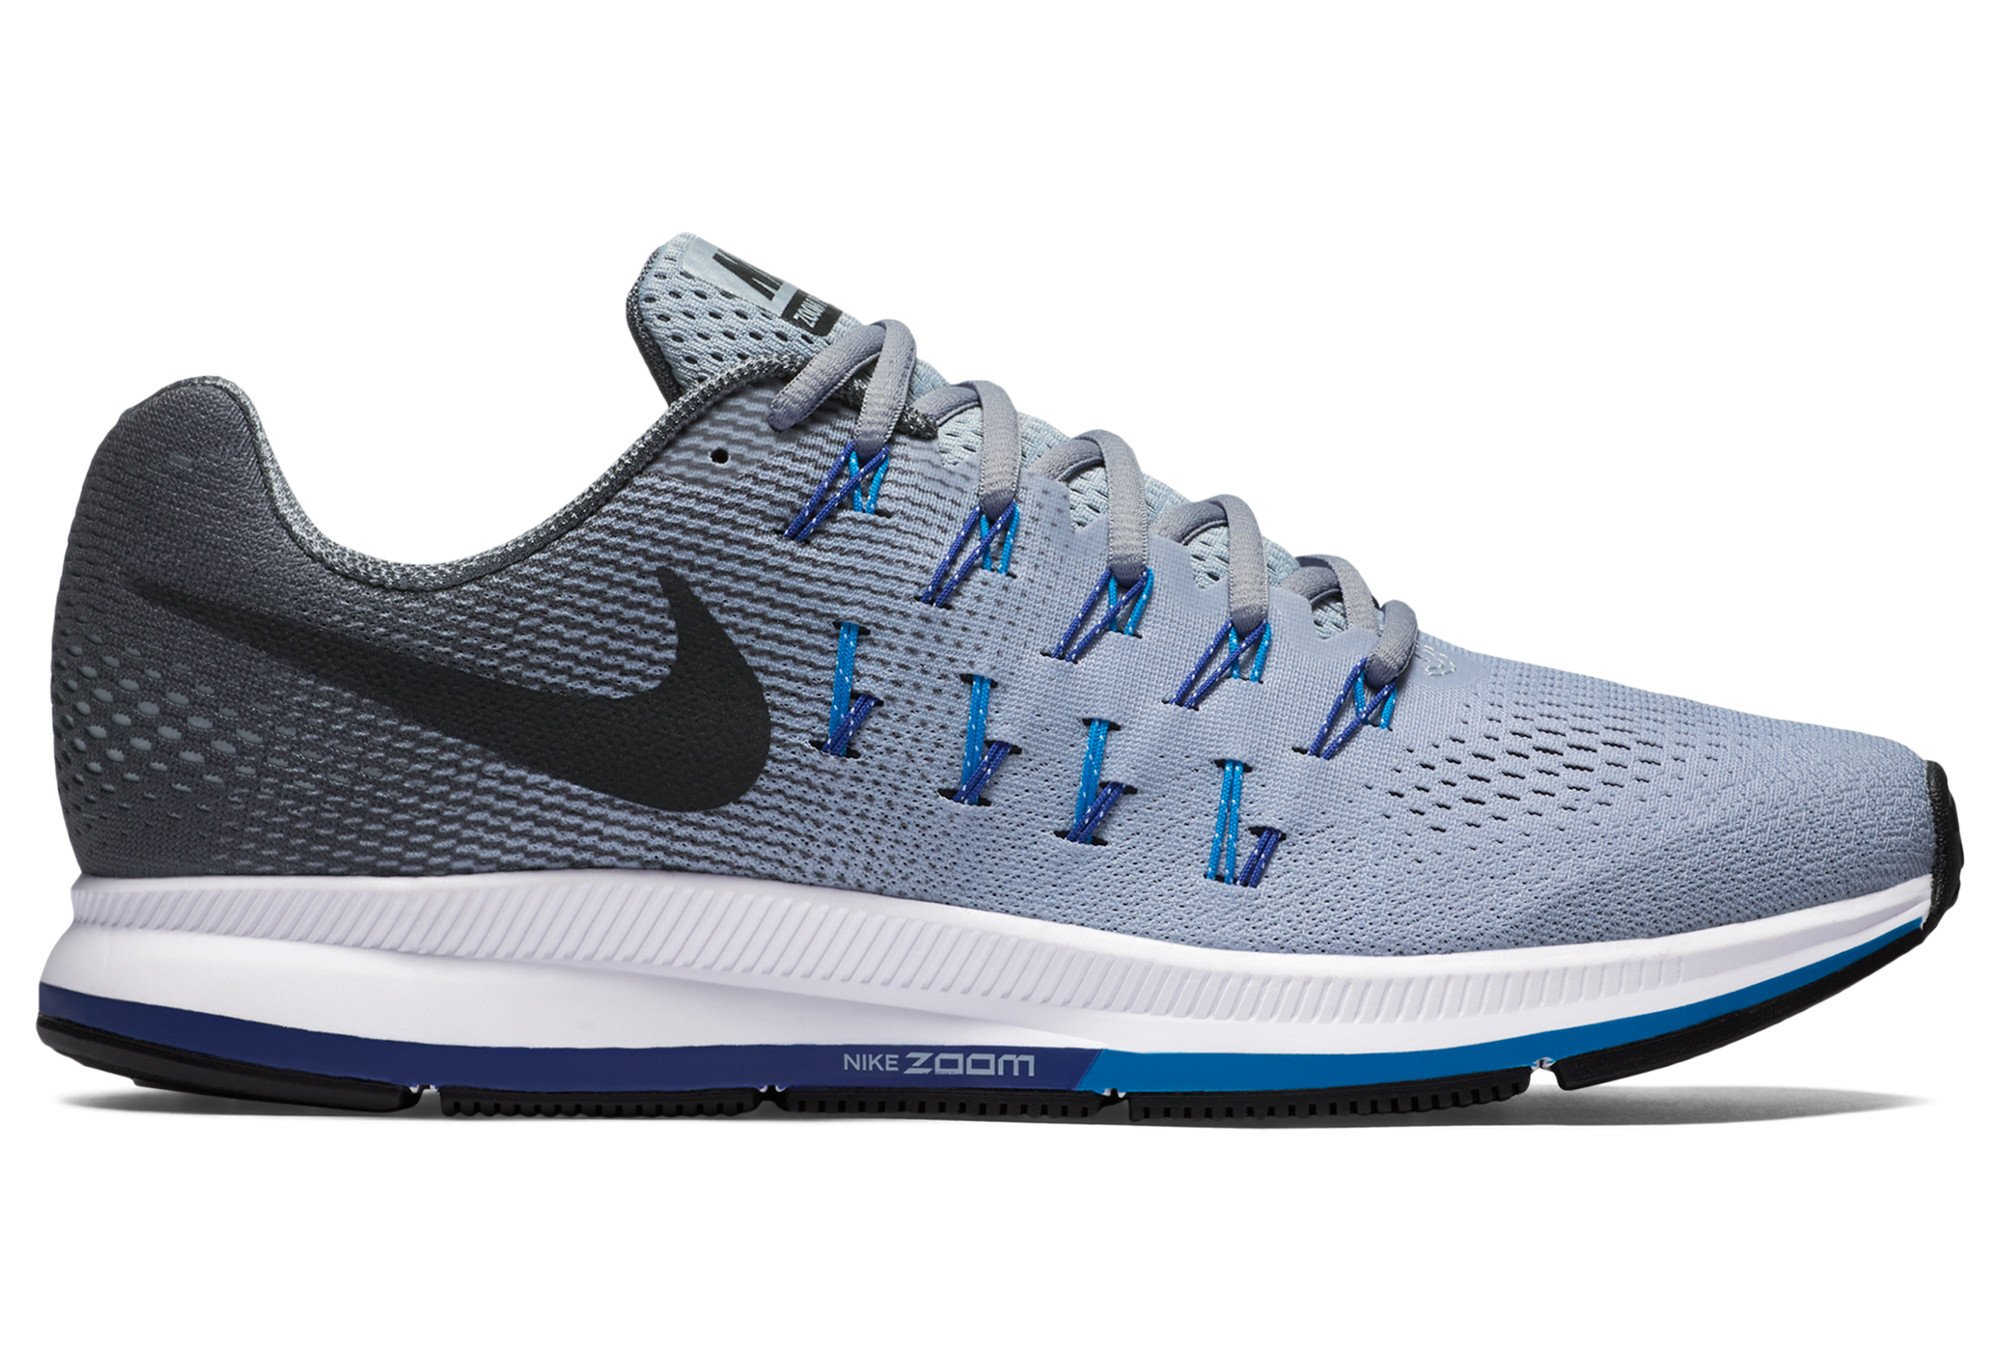 purchase cheap a4f3a 07e16 Chaussures de Running Nike AIR ZOOM PEGASUS 33 Gris